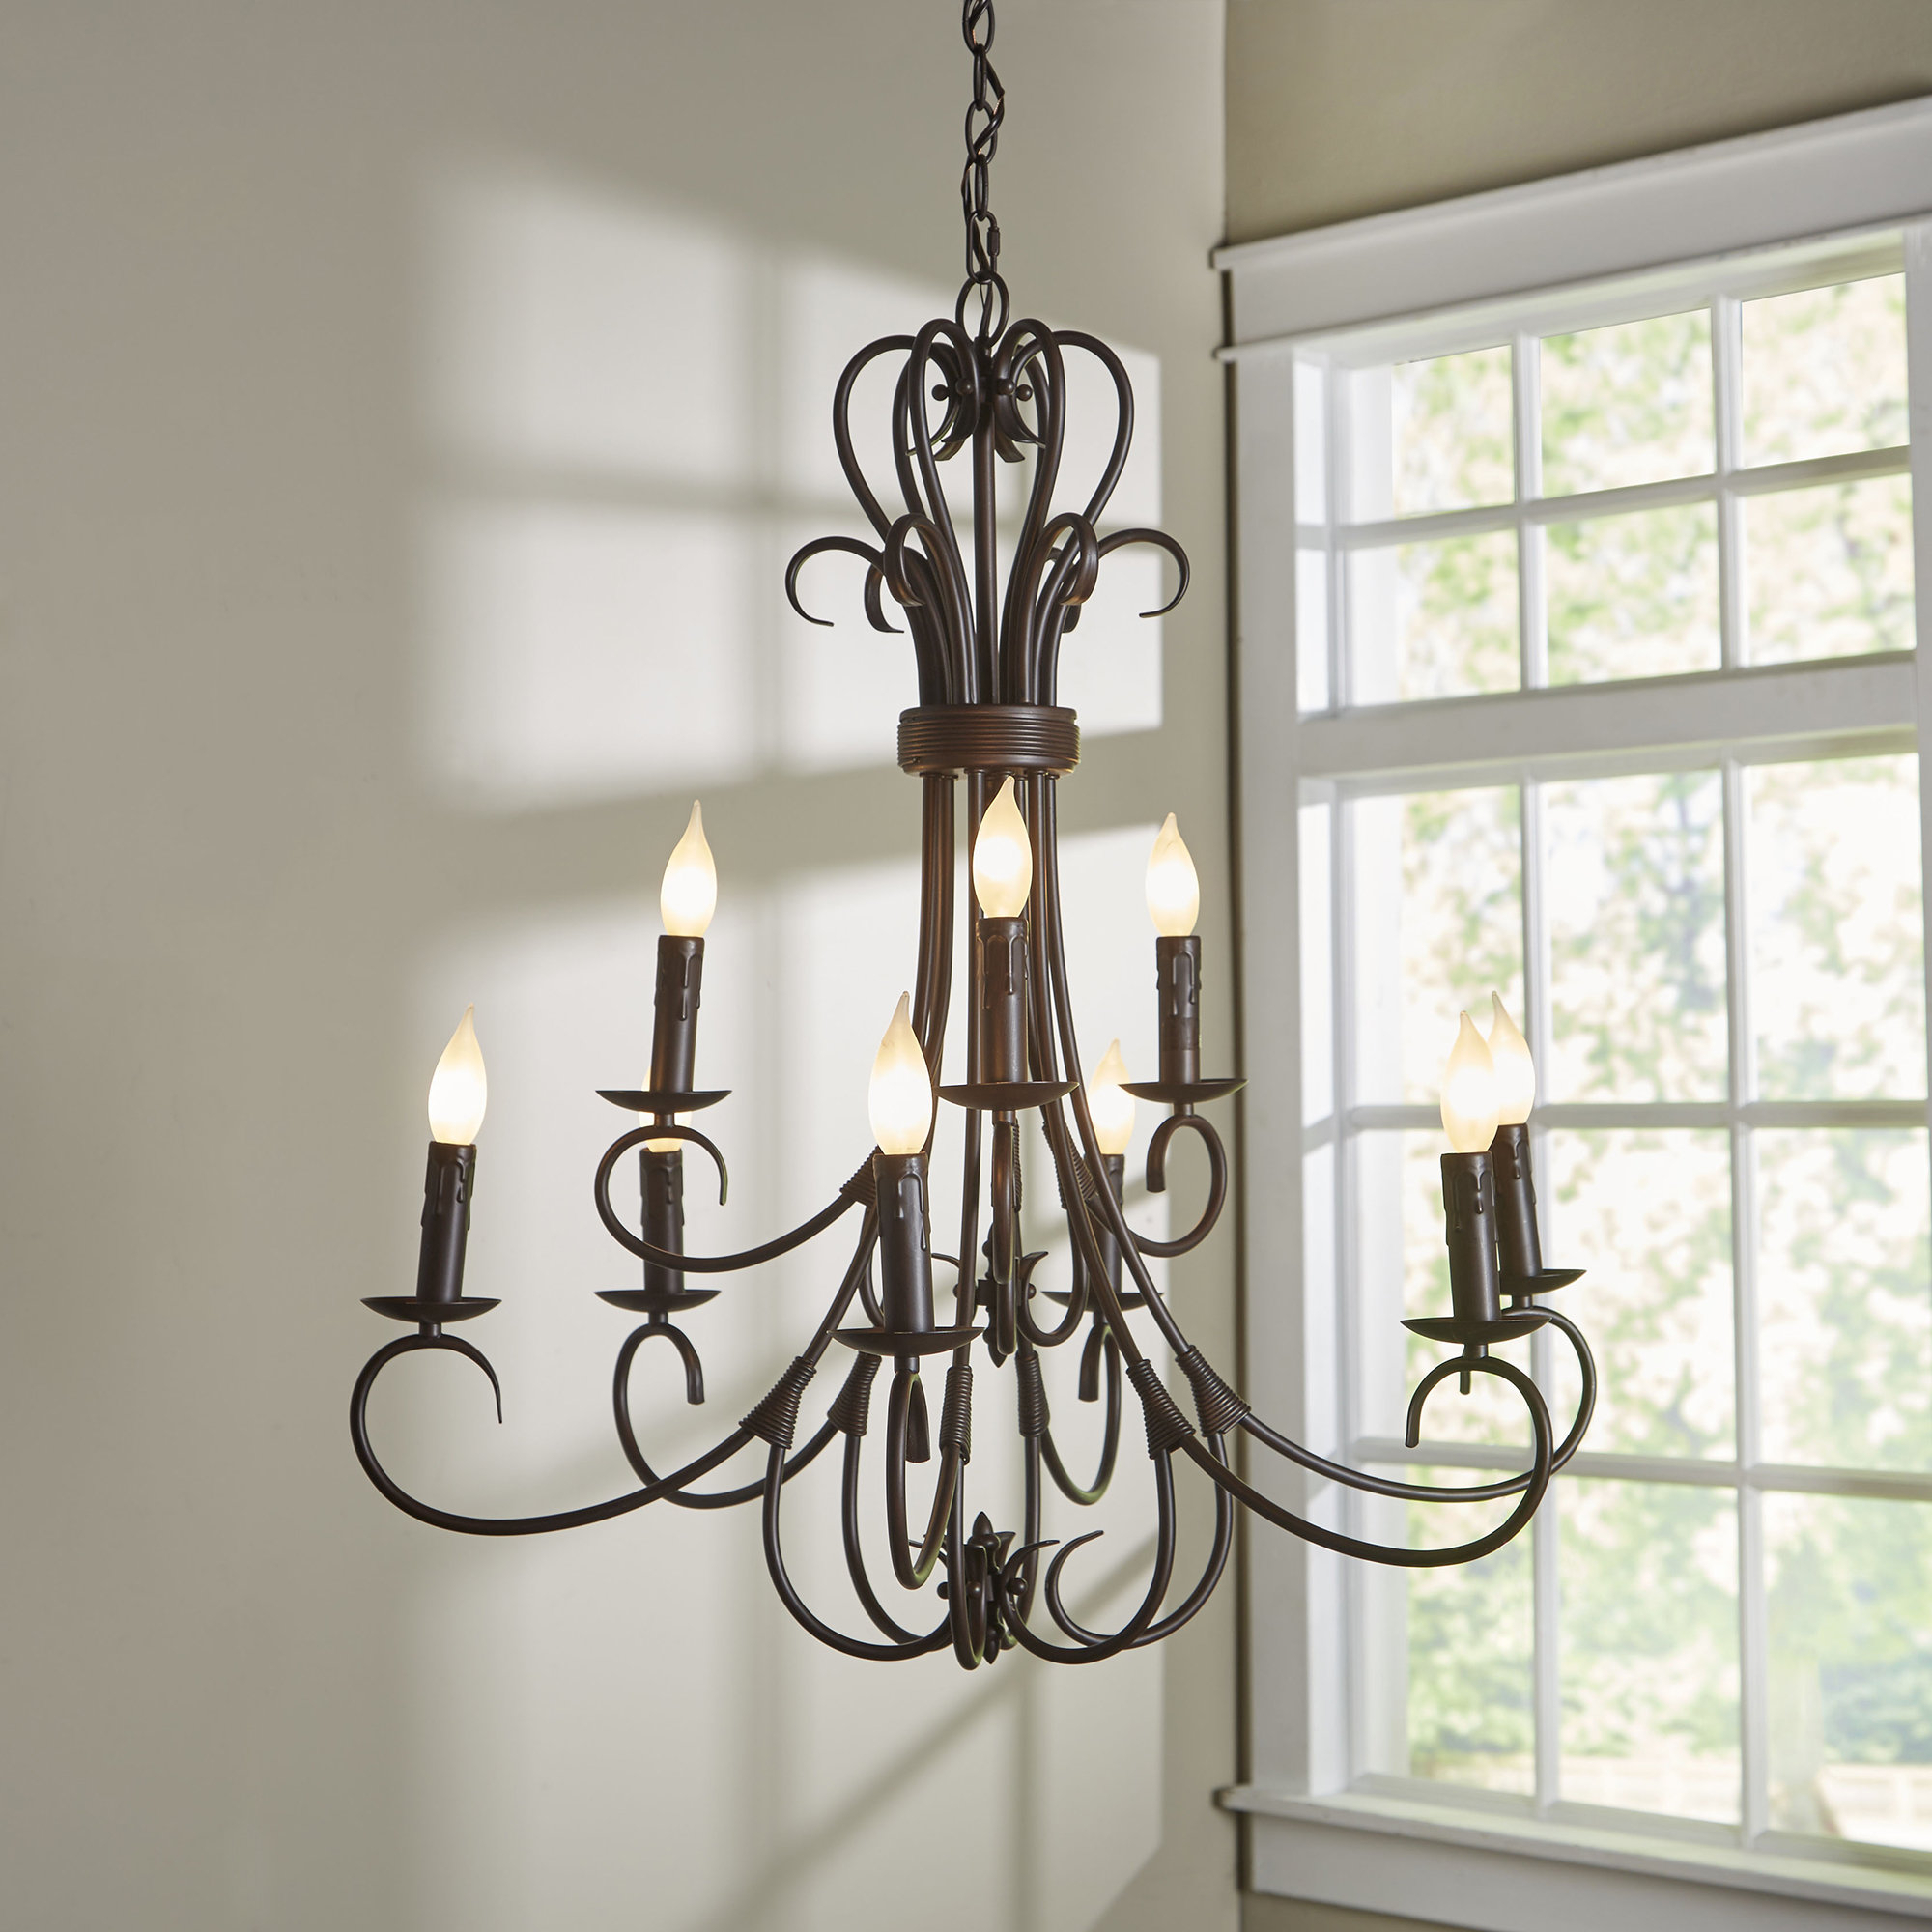 Best And Newest Alcott Hill Gaines 9 Light Candle Style Chandelier With Regard To Gaines 5 Light Shaded Chandeliers (View 12 of 20)